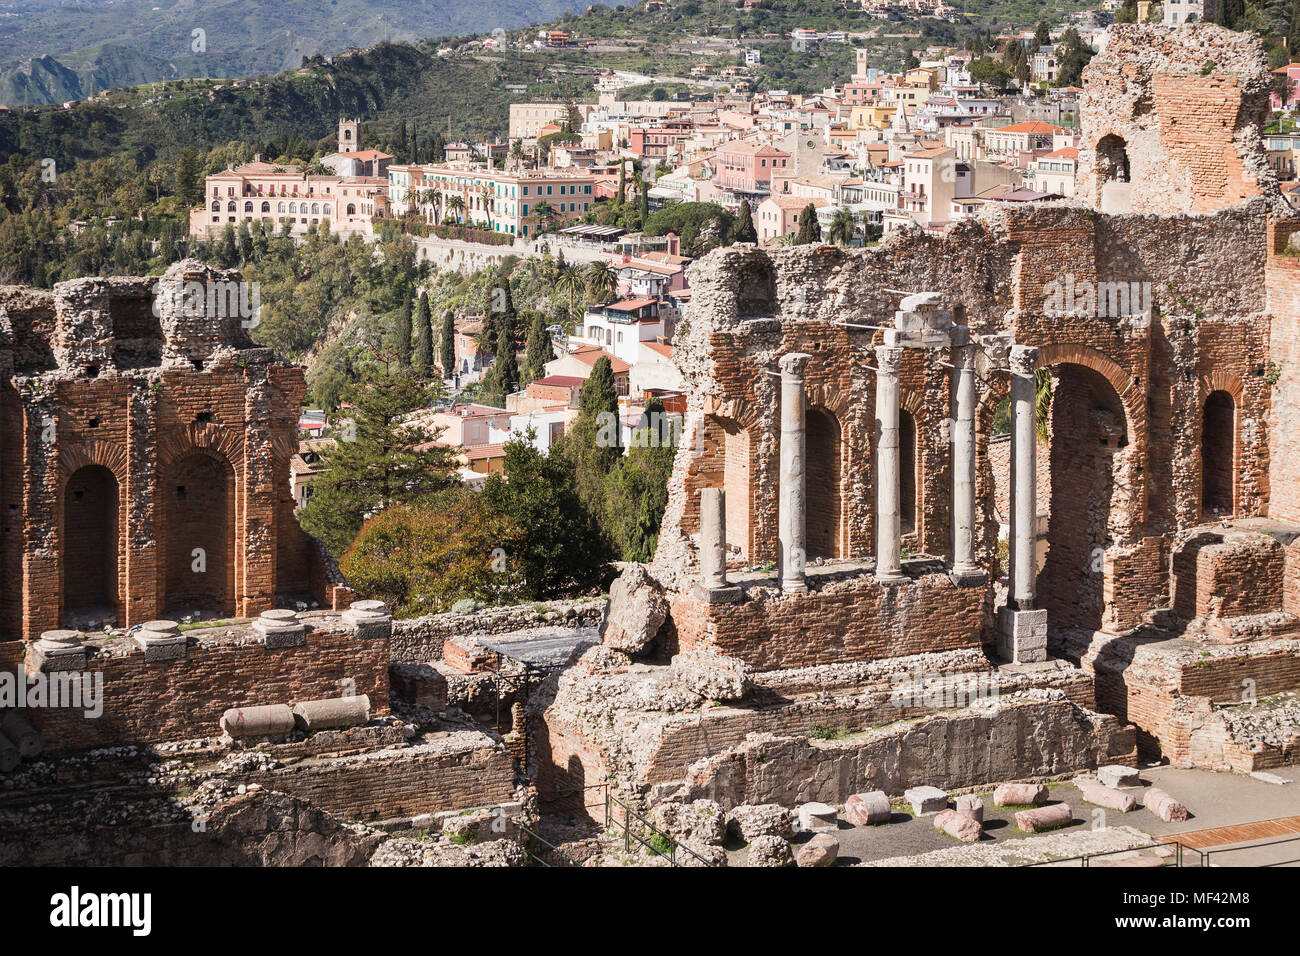 Ancient Greek-Roman theatre of Taormina, Sicily. Stock Photo